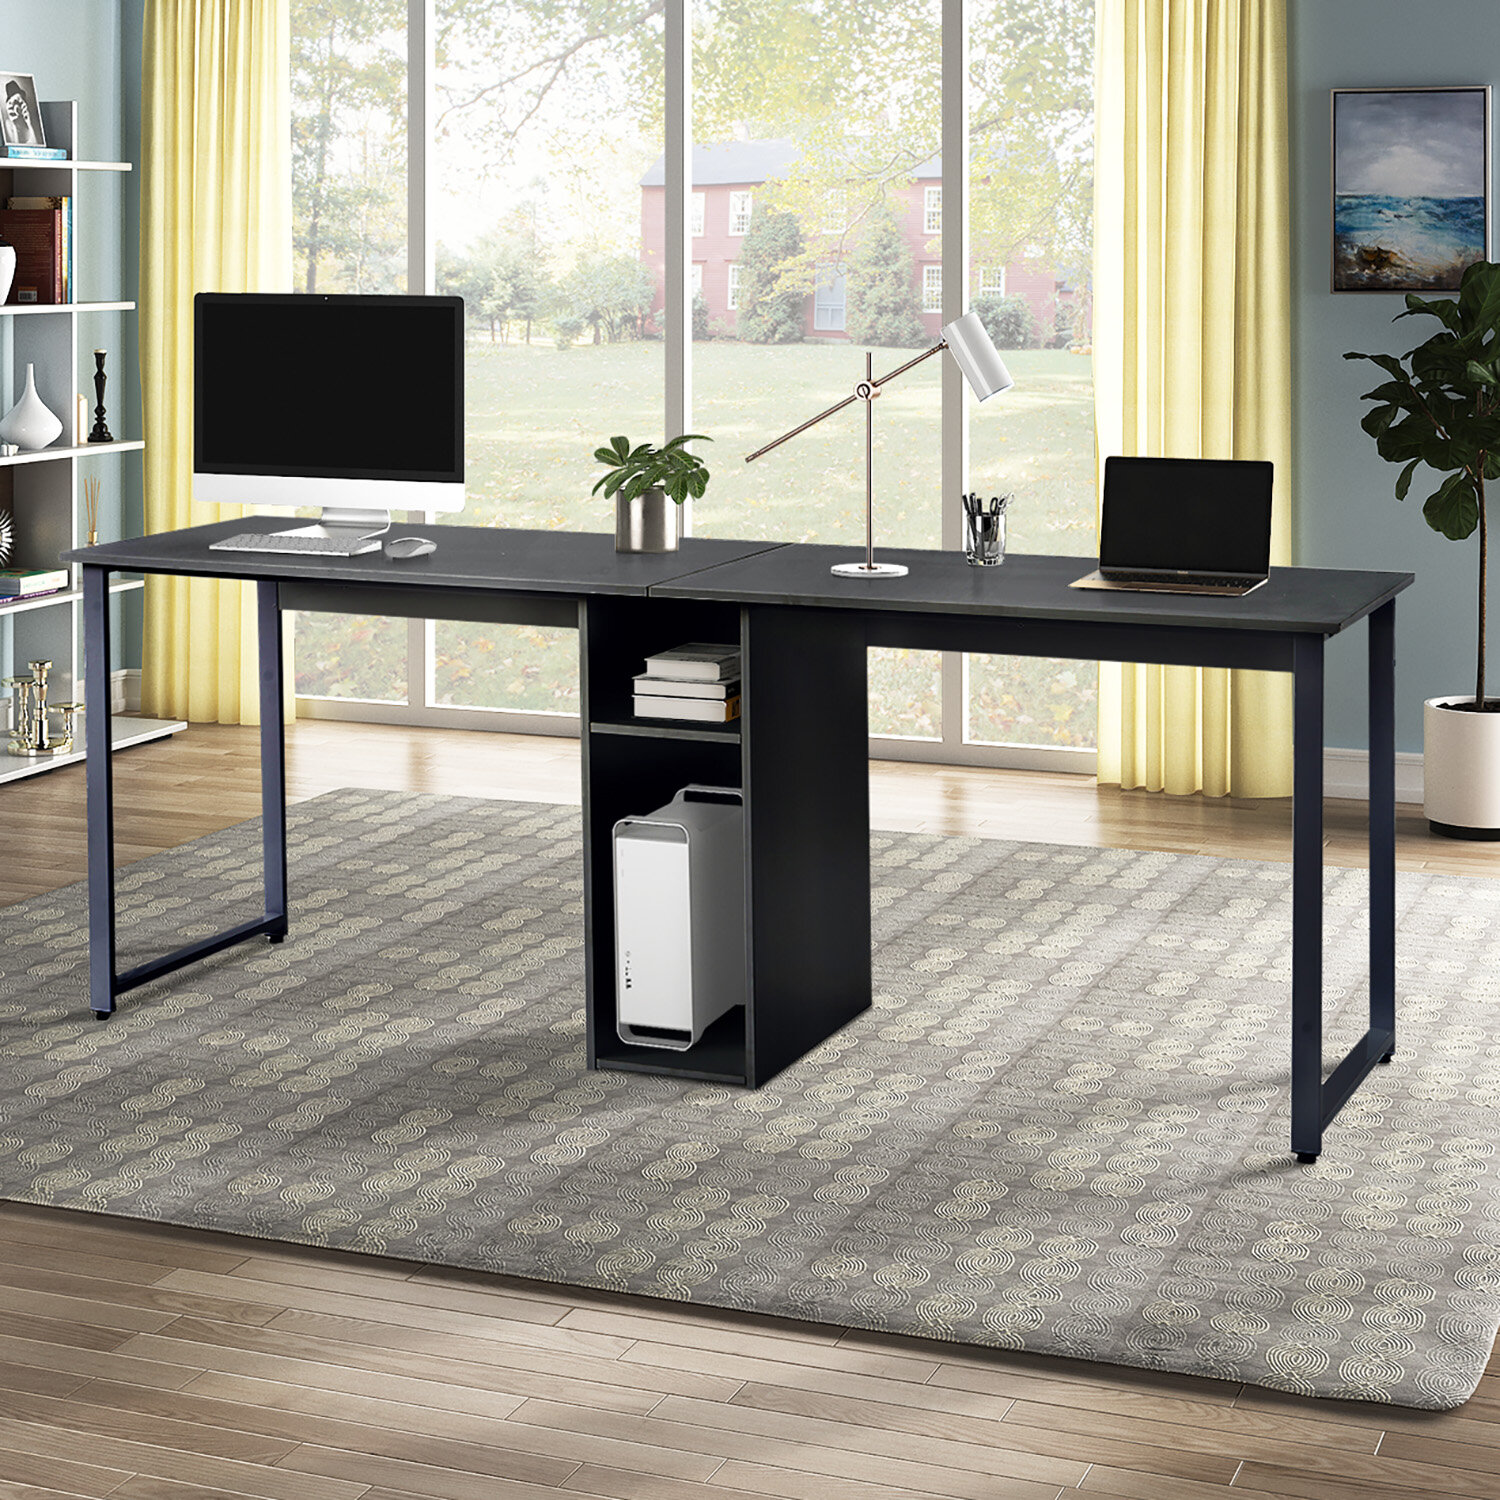 Latitude Run Home Office 2 Person Desk Large Double Workstation Desk Writing Desk With Storage Wayfair Ca